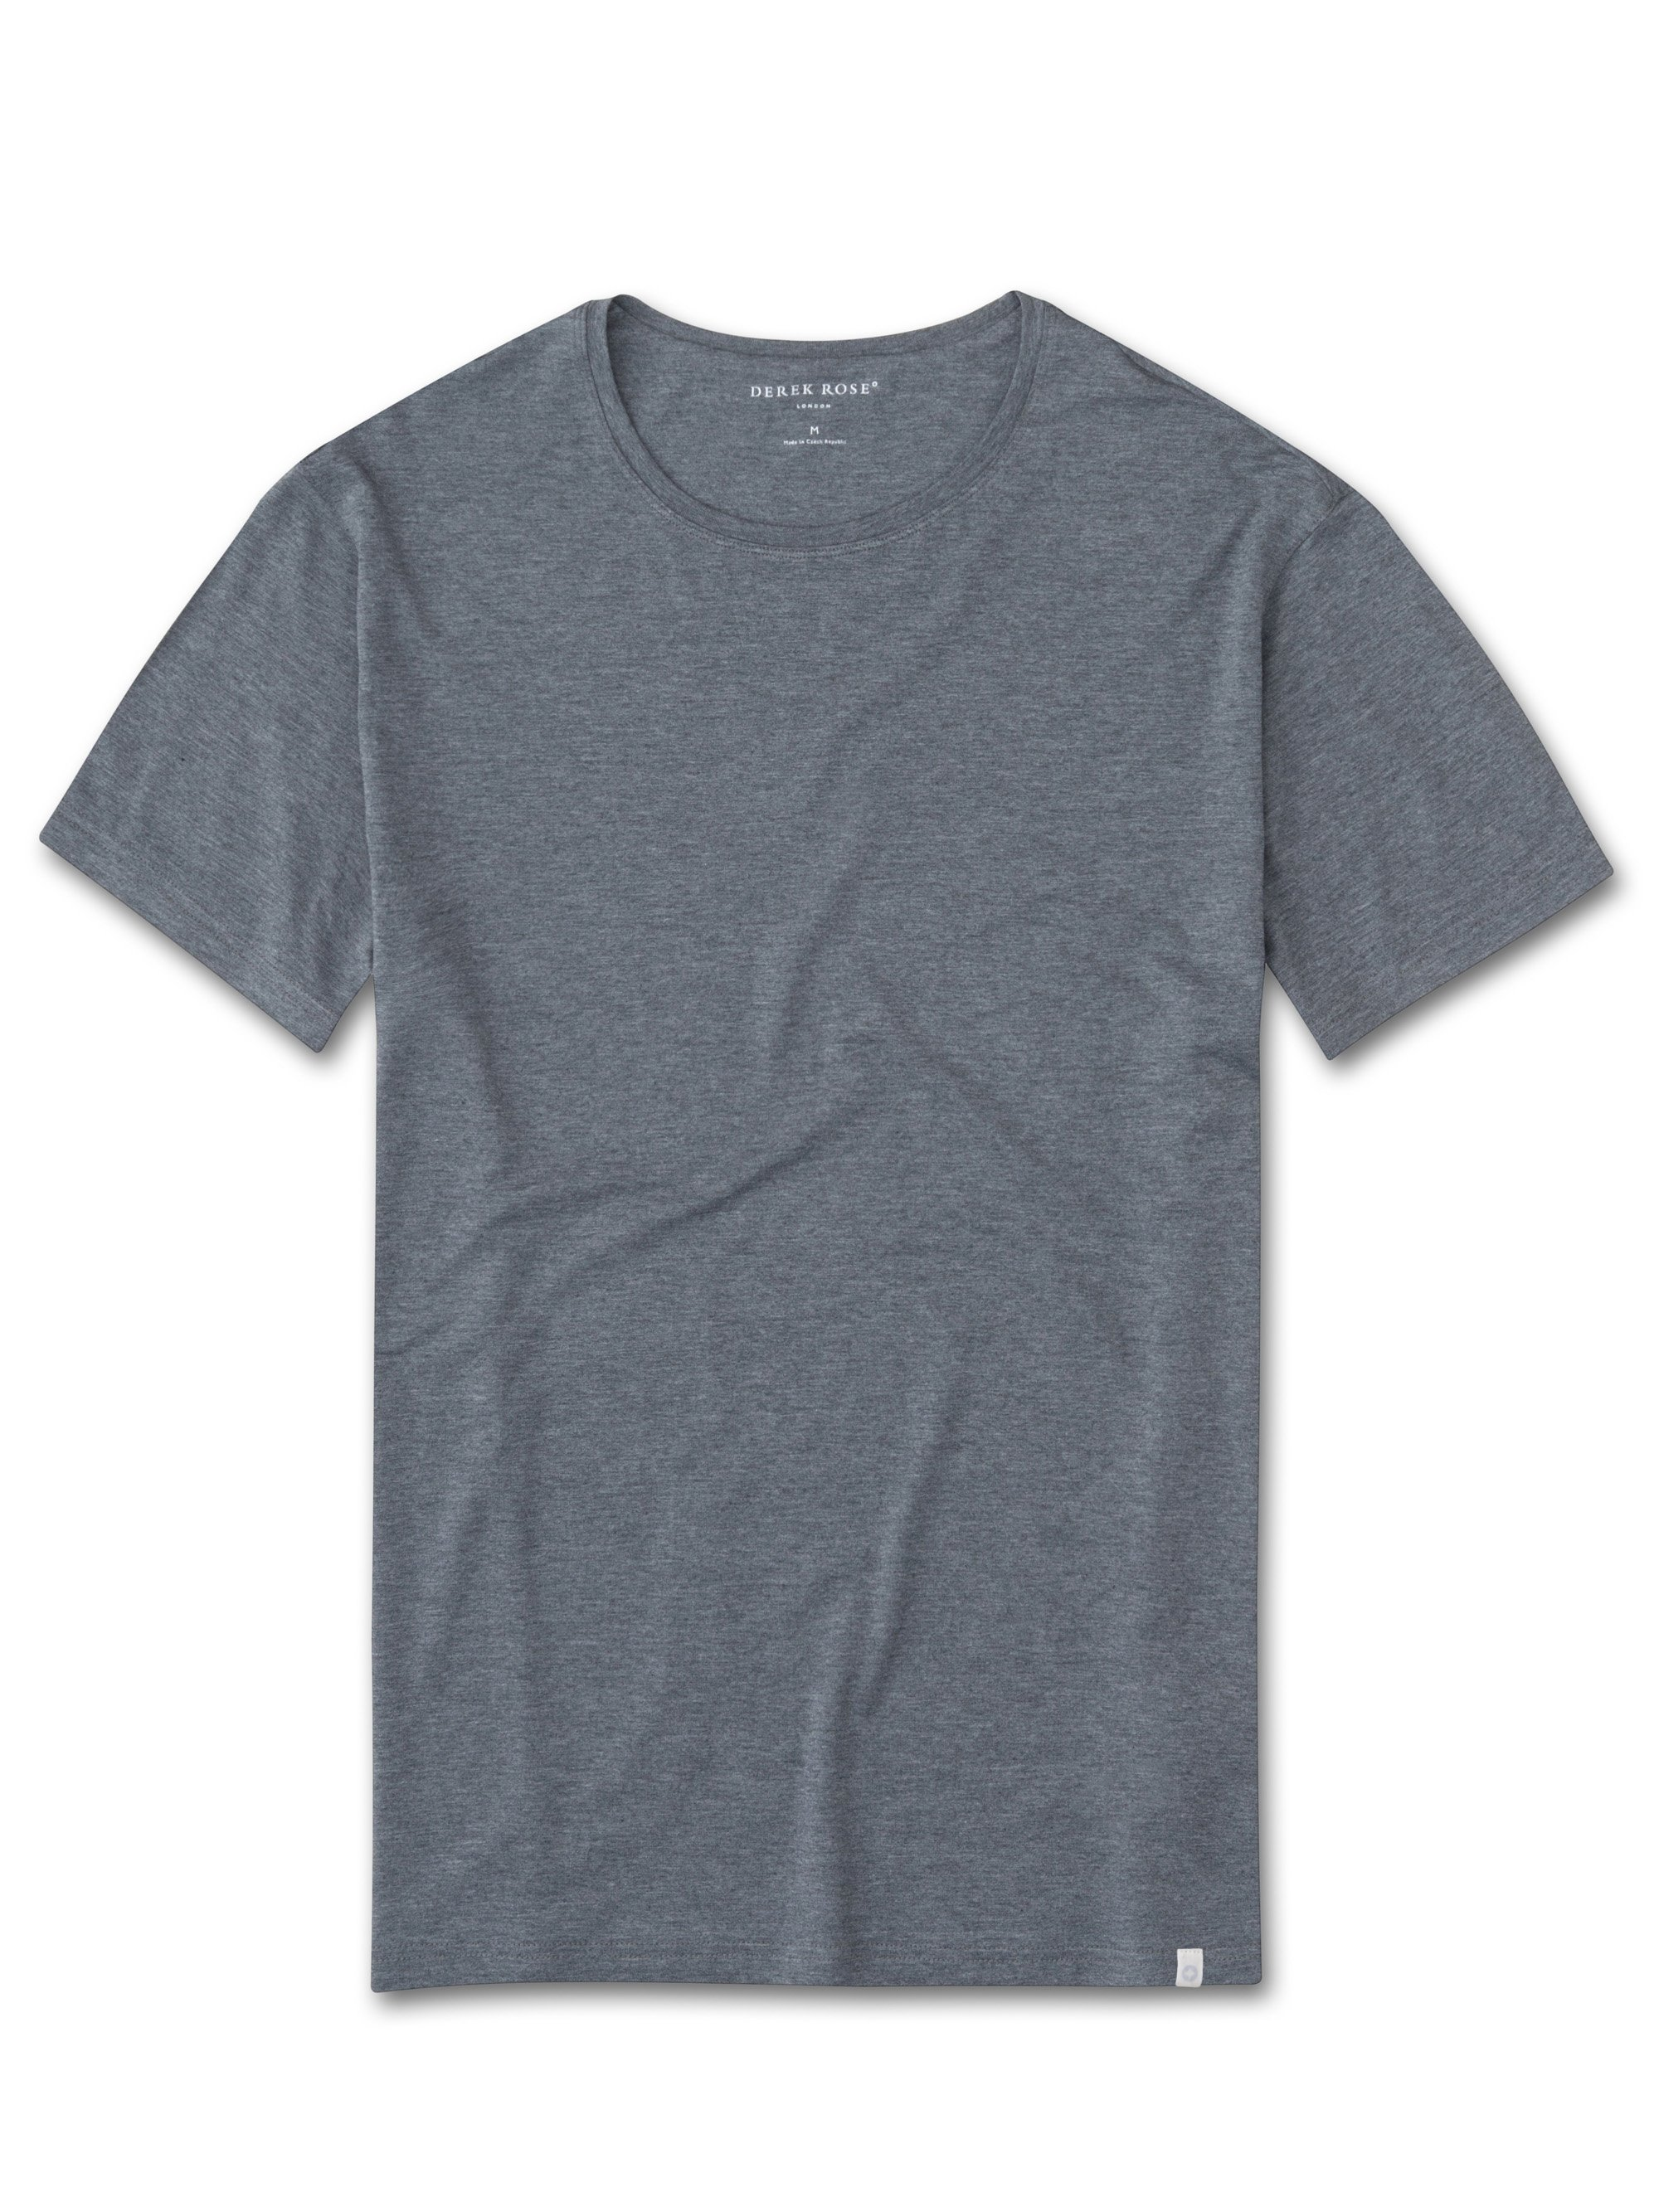 Men's Short Sleeve T-Shirt Marlowe Micro Modal Stretch Charcoal